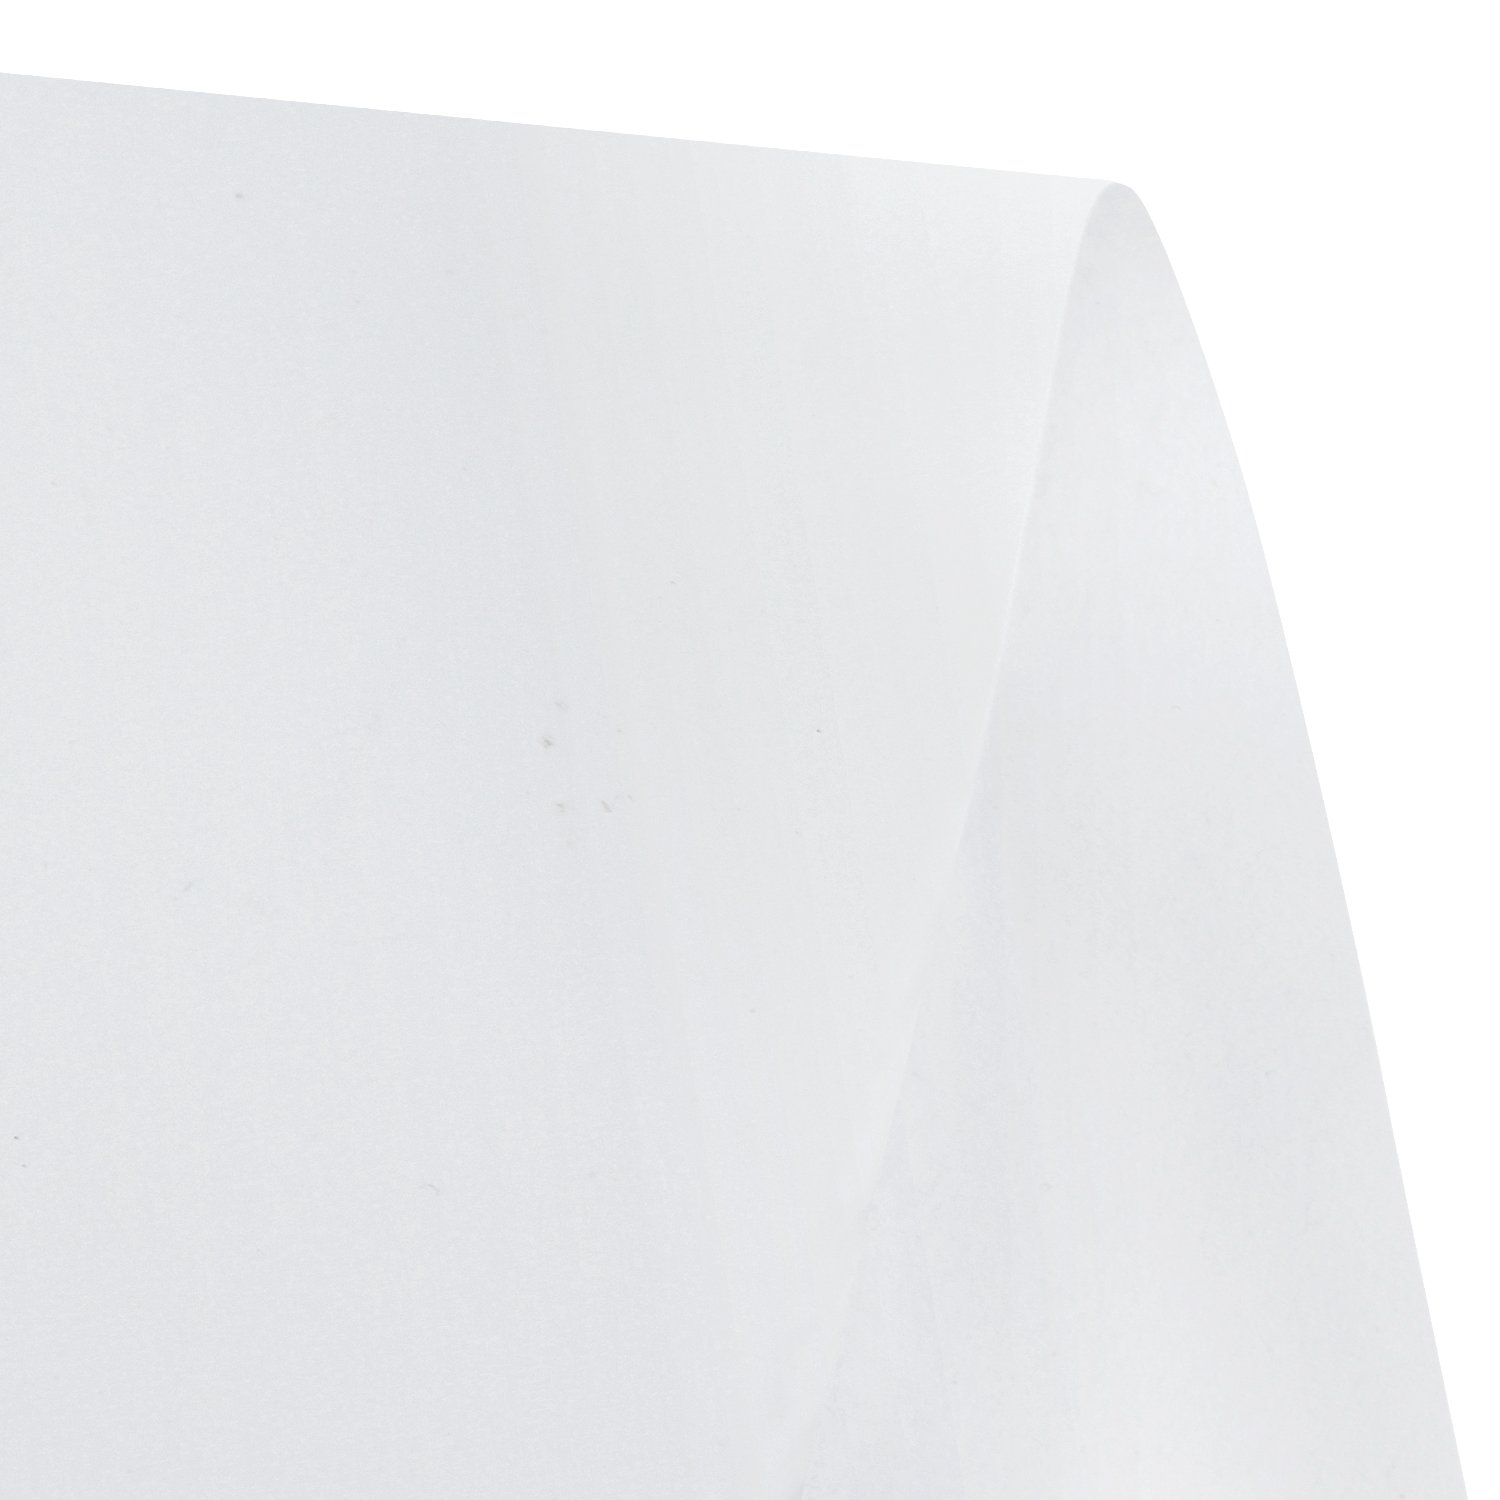 RUSPEPA Rollo De Papel Kraft Blanco - 76.2 Cm X 30 - Papel ...